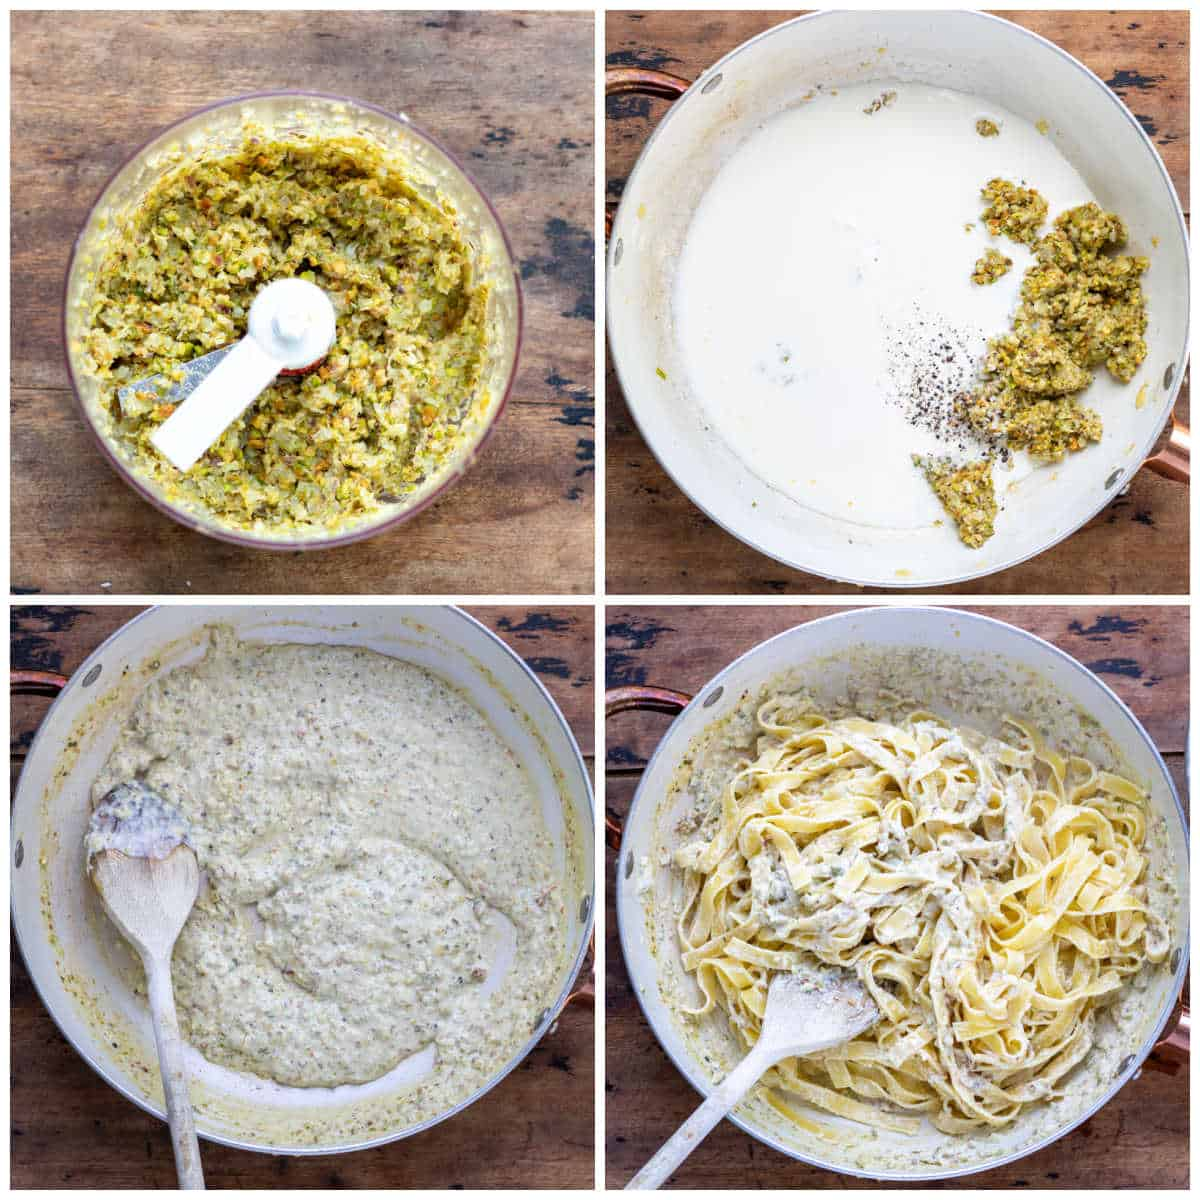 Collage: 1 sauce in a food processor, 2 added to a pan with cream, 3 cooked sauce, 4 tossed with pasta.